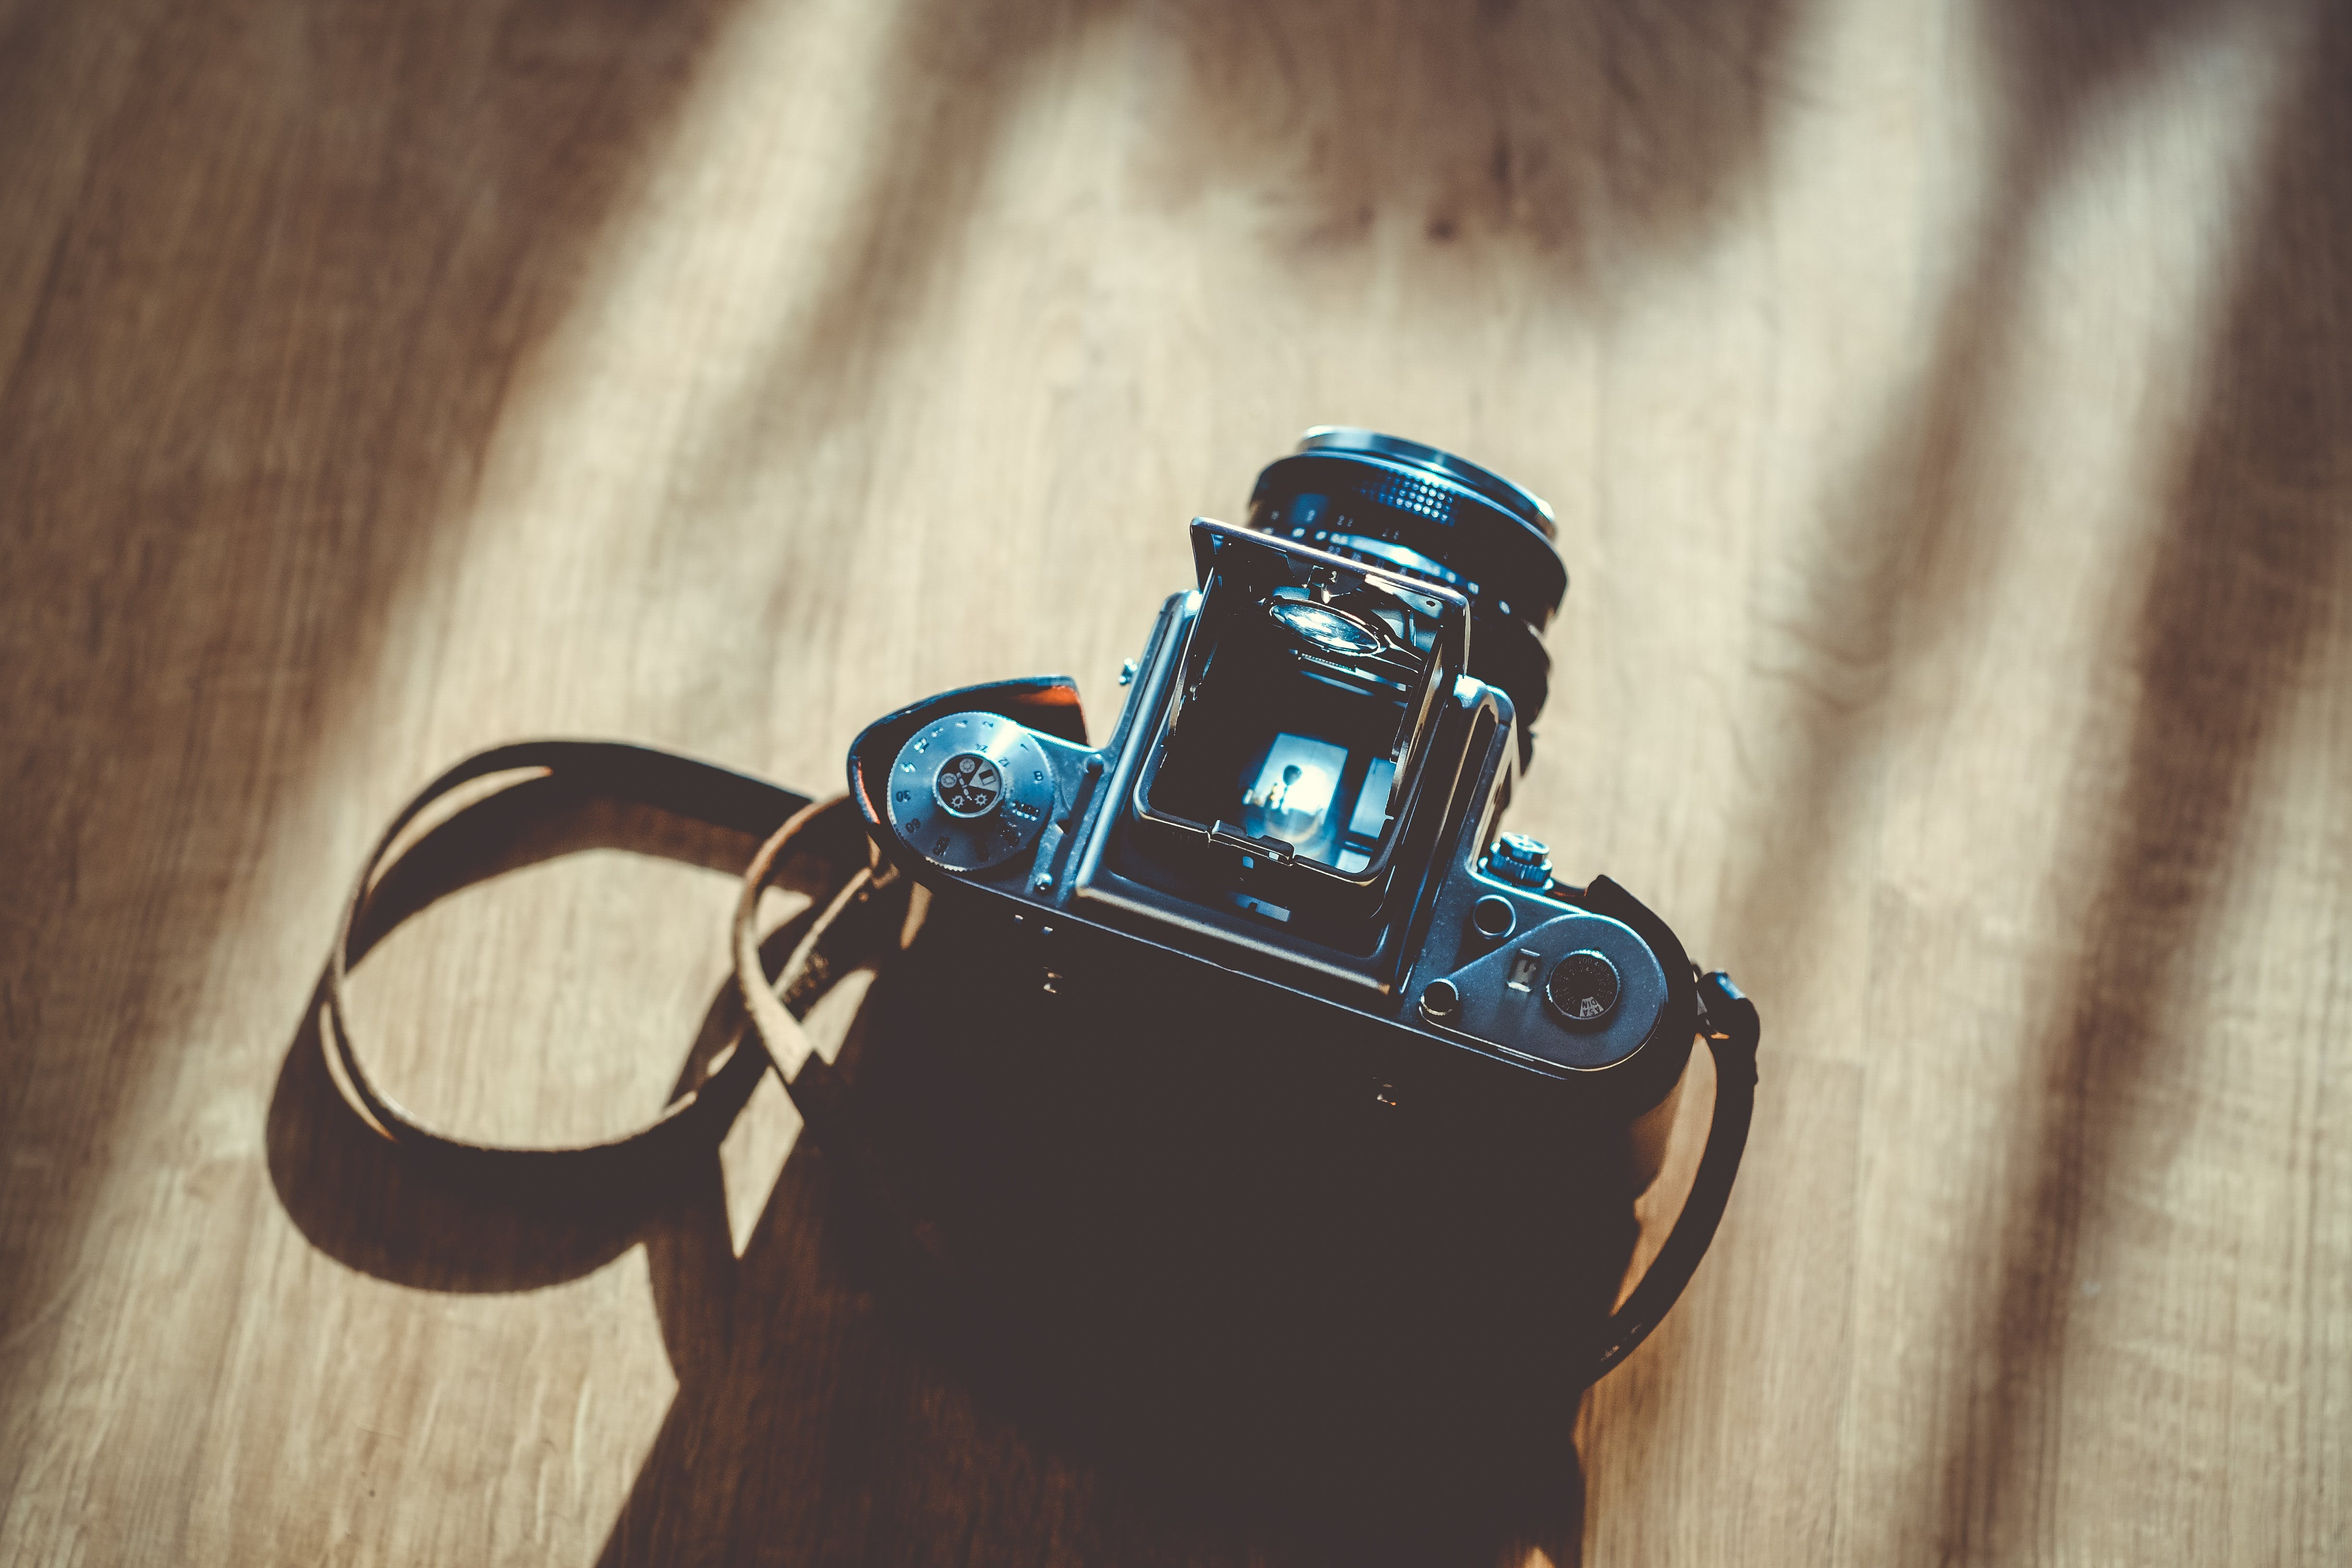 analog, analog camera, antique